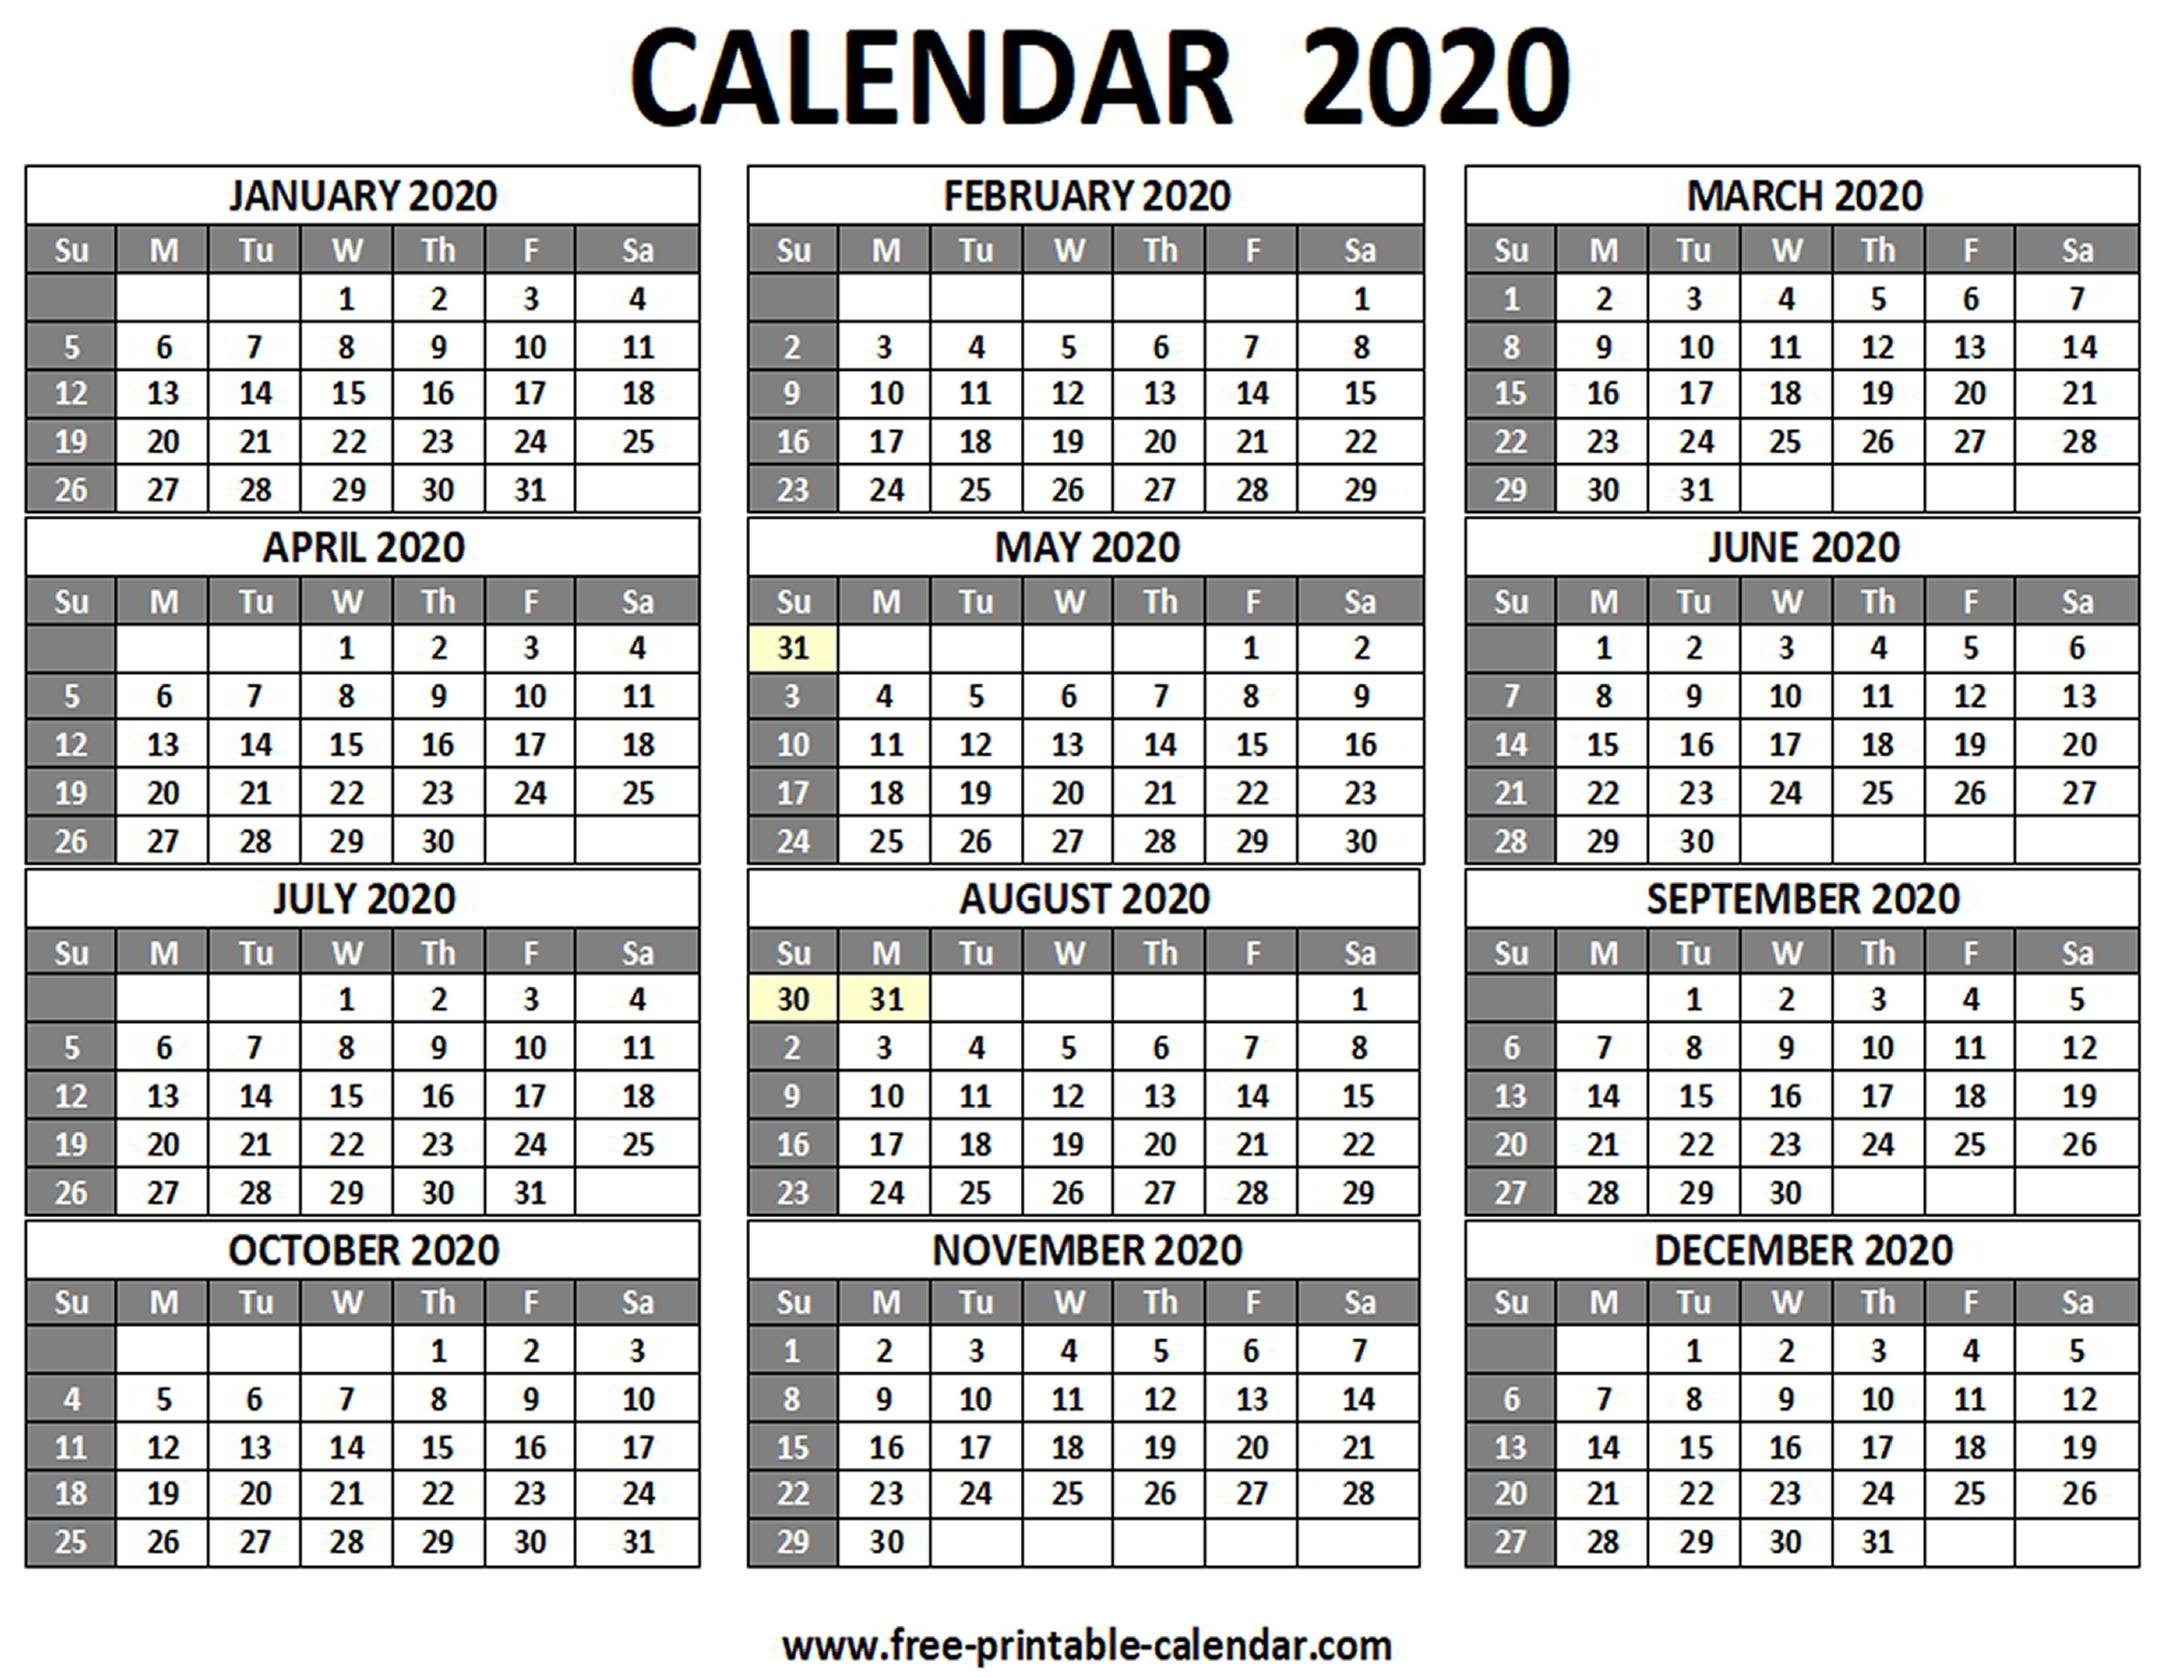 Printable 2020 Calendar - Free-Printable-Calendar 2020 Calendar One Page